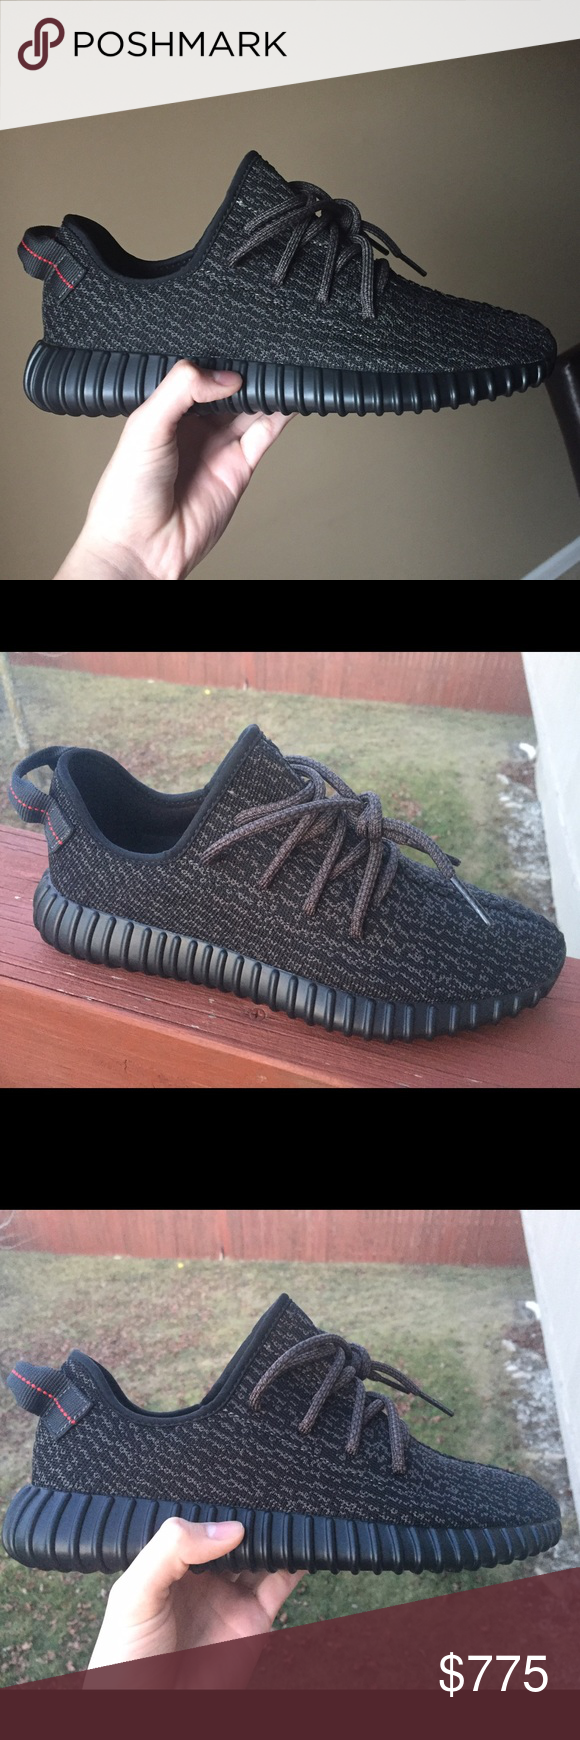 Yeezy Boost 350 Pirate Black size 9 100% Authentic DS in a size 9 fully authentic Yeezy Shoes Sneakers